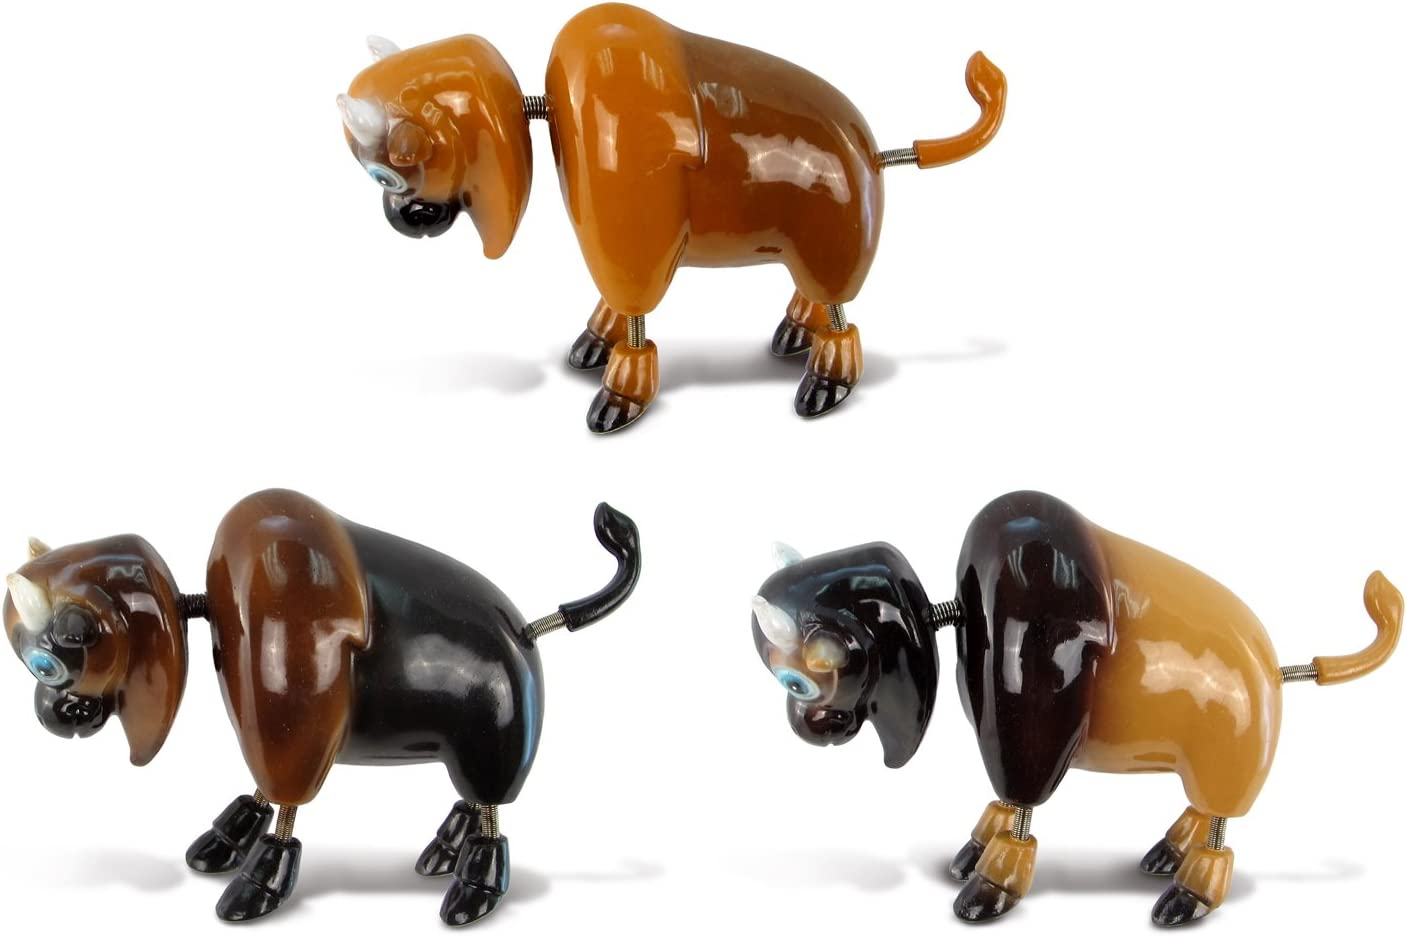 CoTa Global Buffalo Refrigerator Bobble Magnets Set of 3 - Assorted Color Fun Cute Wild Life Animal Bison Bobble Head Magnets For Kitchen Fridge, Home Decor, Cool Office Decorative Novelty - 3 Pack